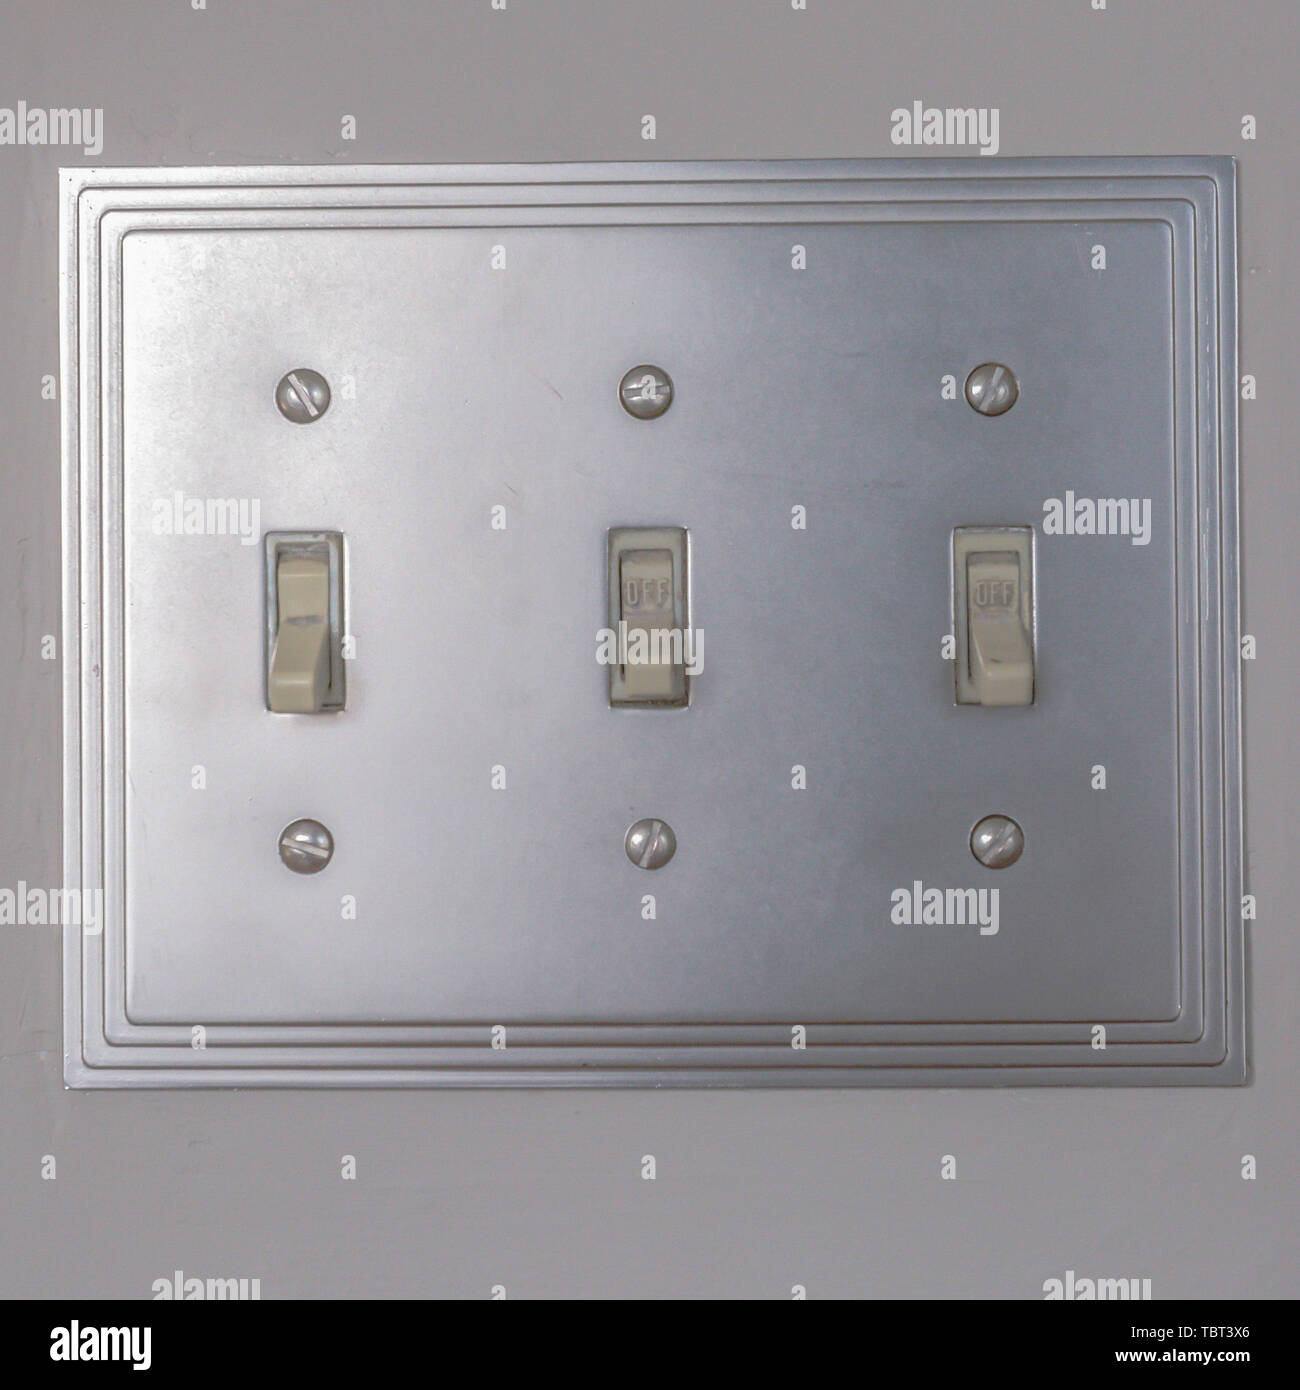 Square Close up view of vertical flip toggle light switches in off mode - Stock Image